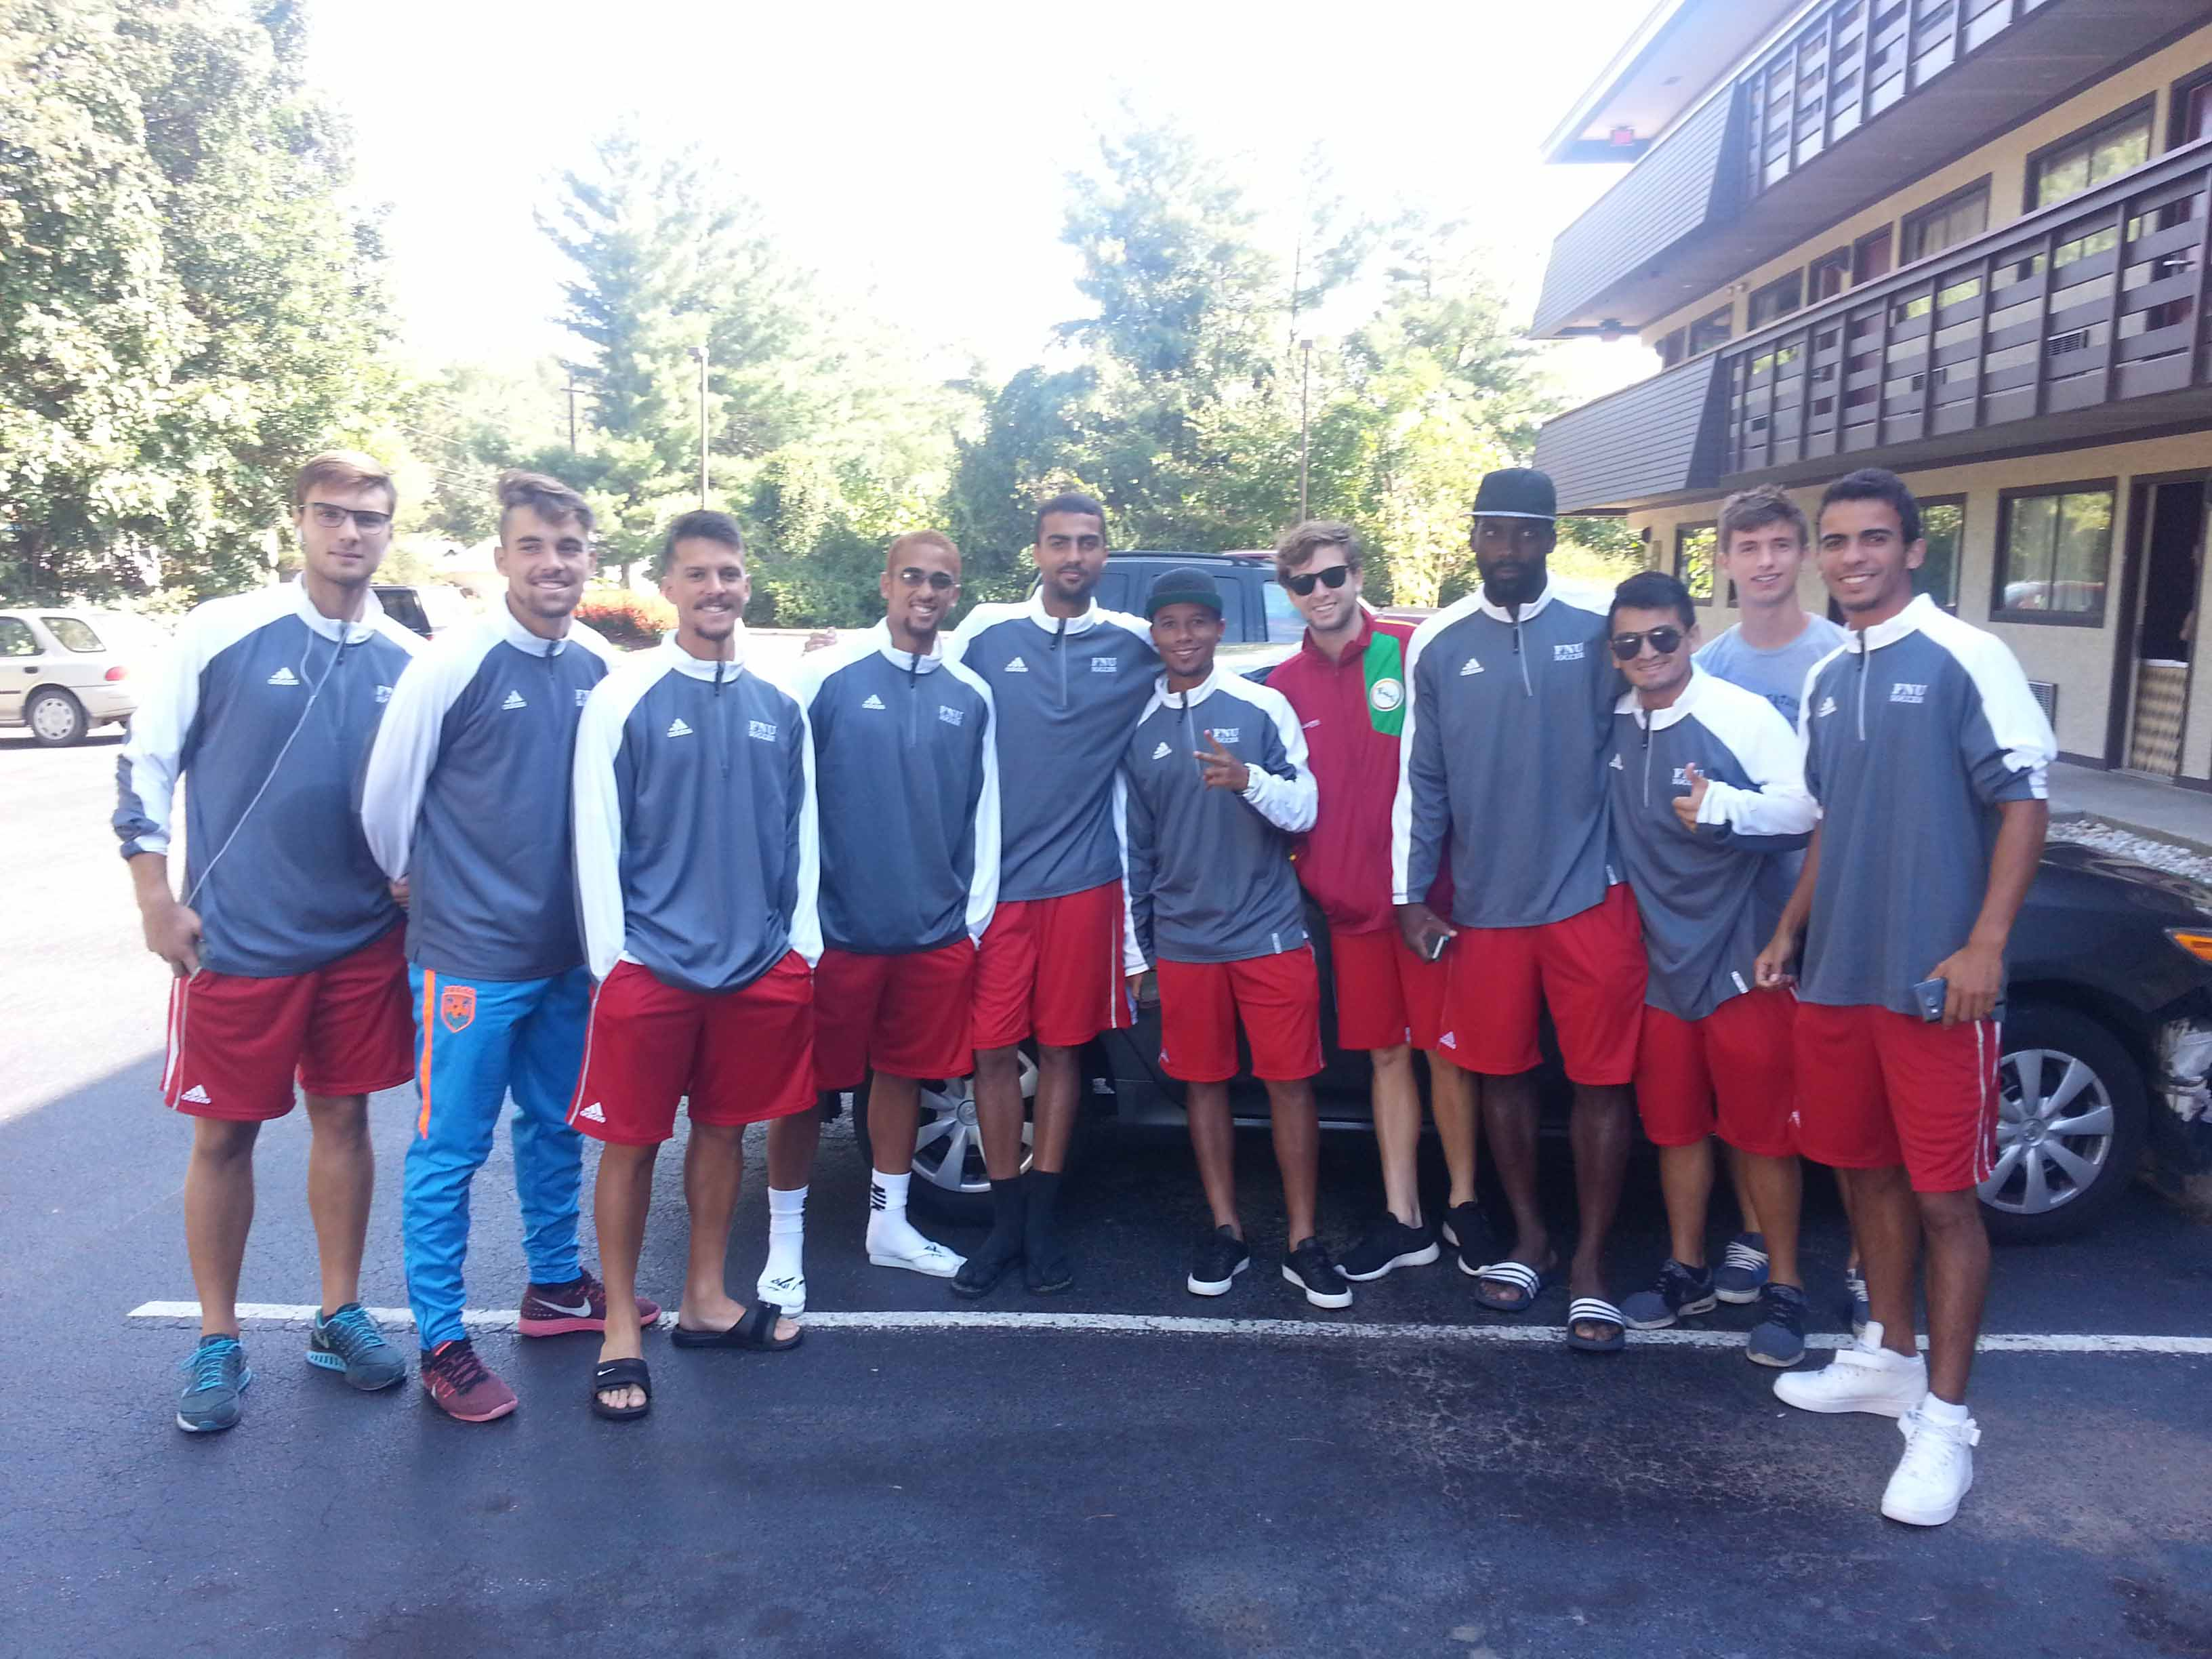 Men's Soccer at Red Roof Inn before Warren Wilson College game in Ashville NC